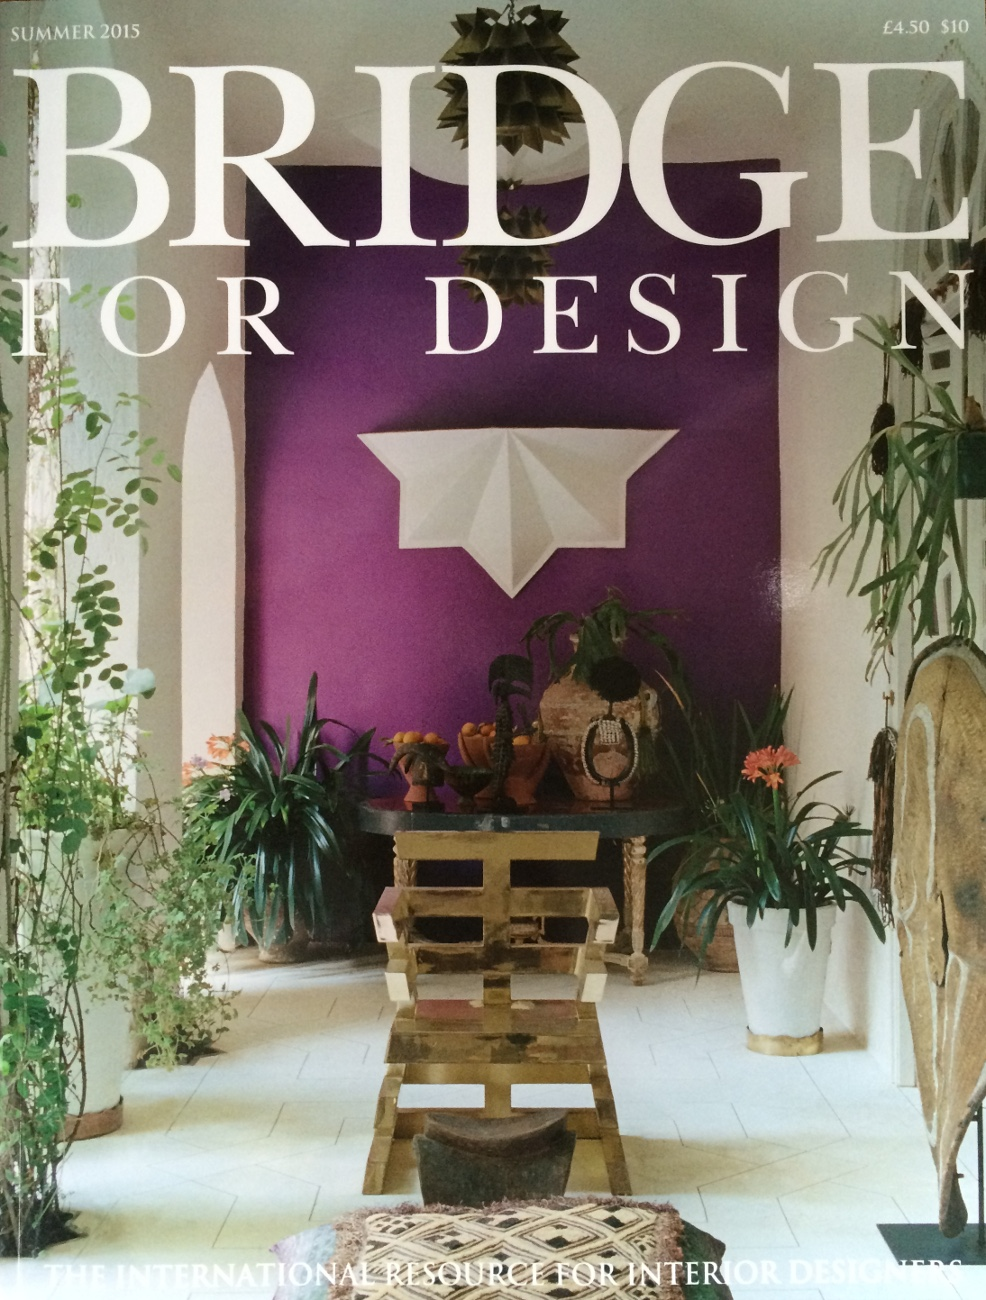 BRIDGE FOR DESIGN SUMMER 2015 Diary Arts and Antiques